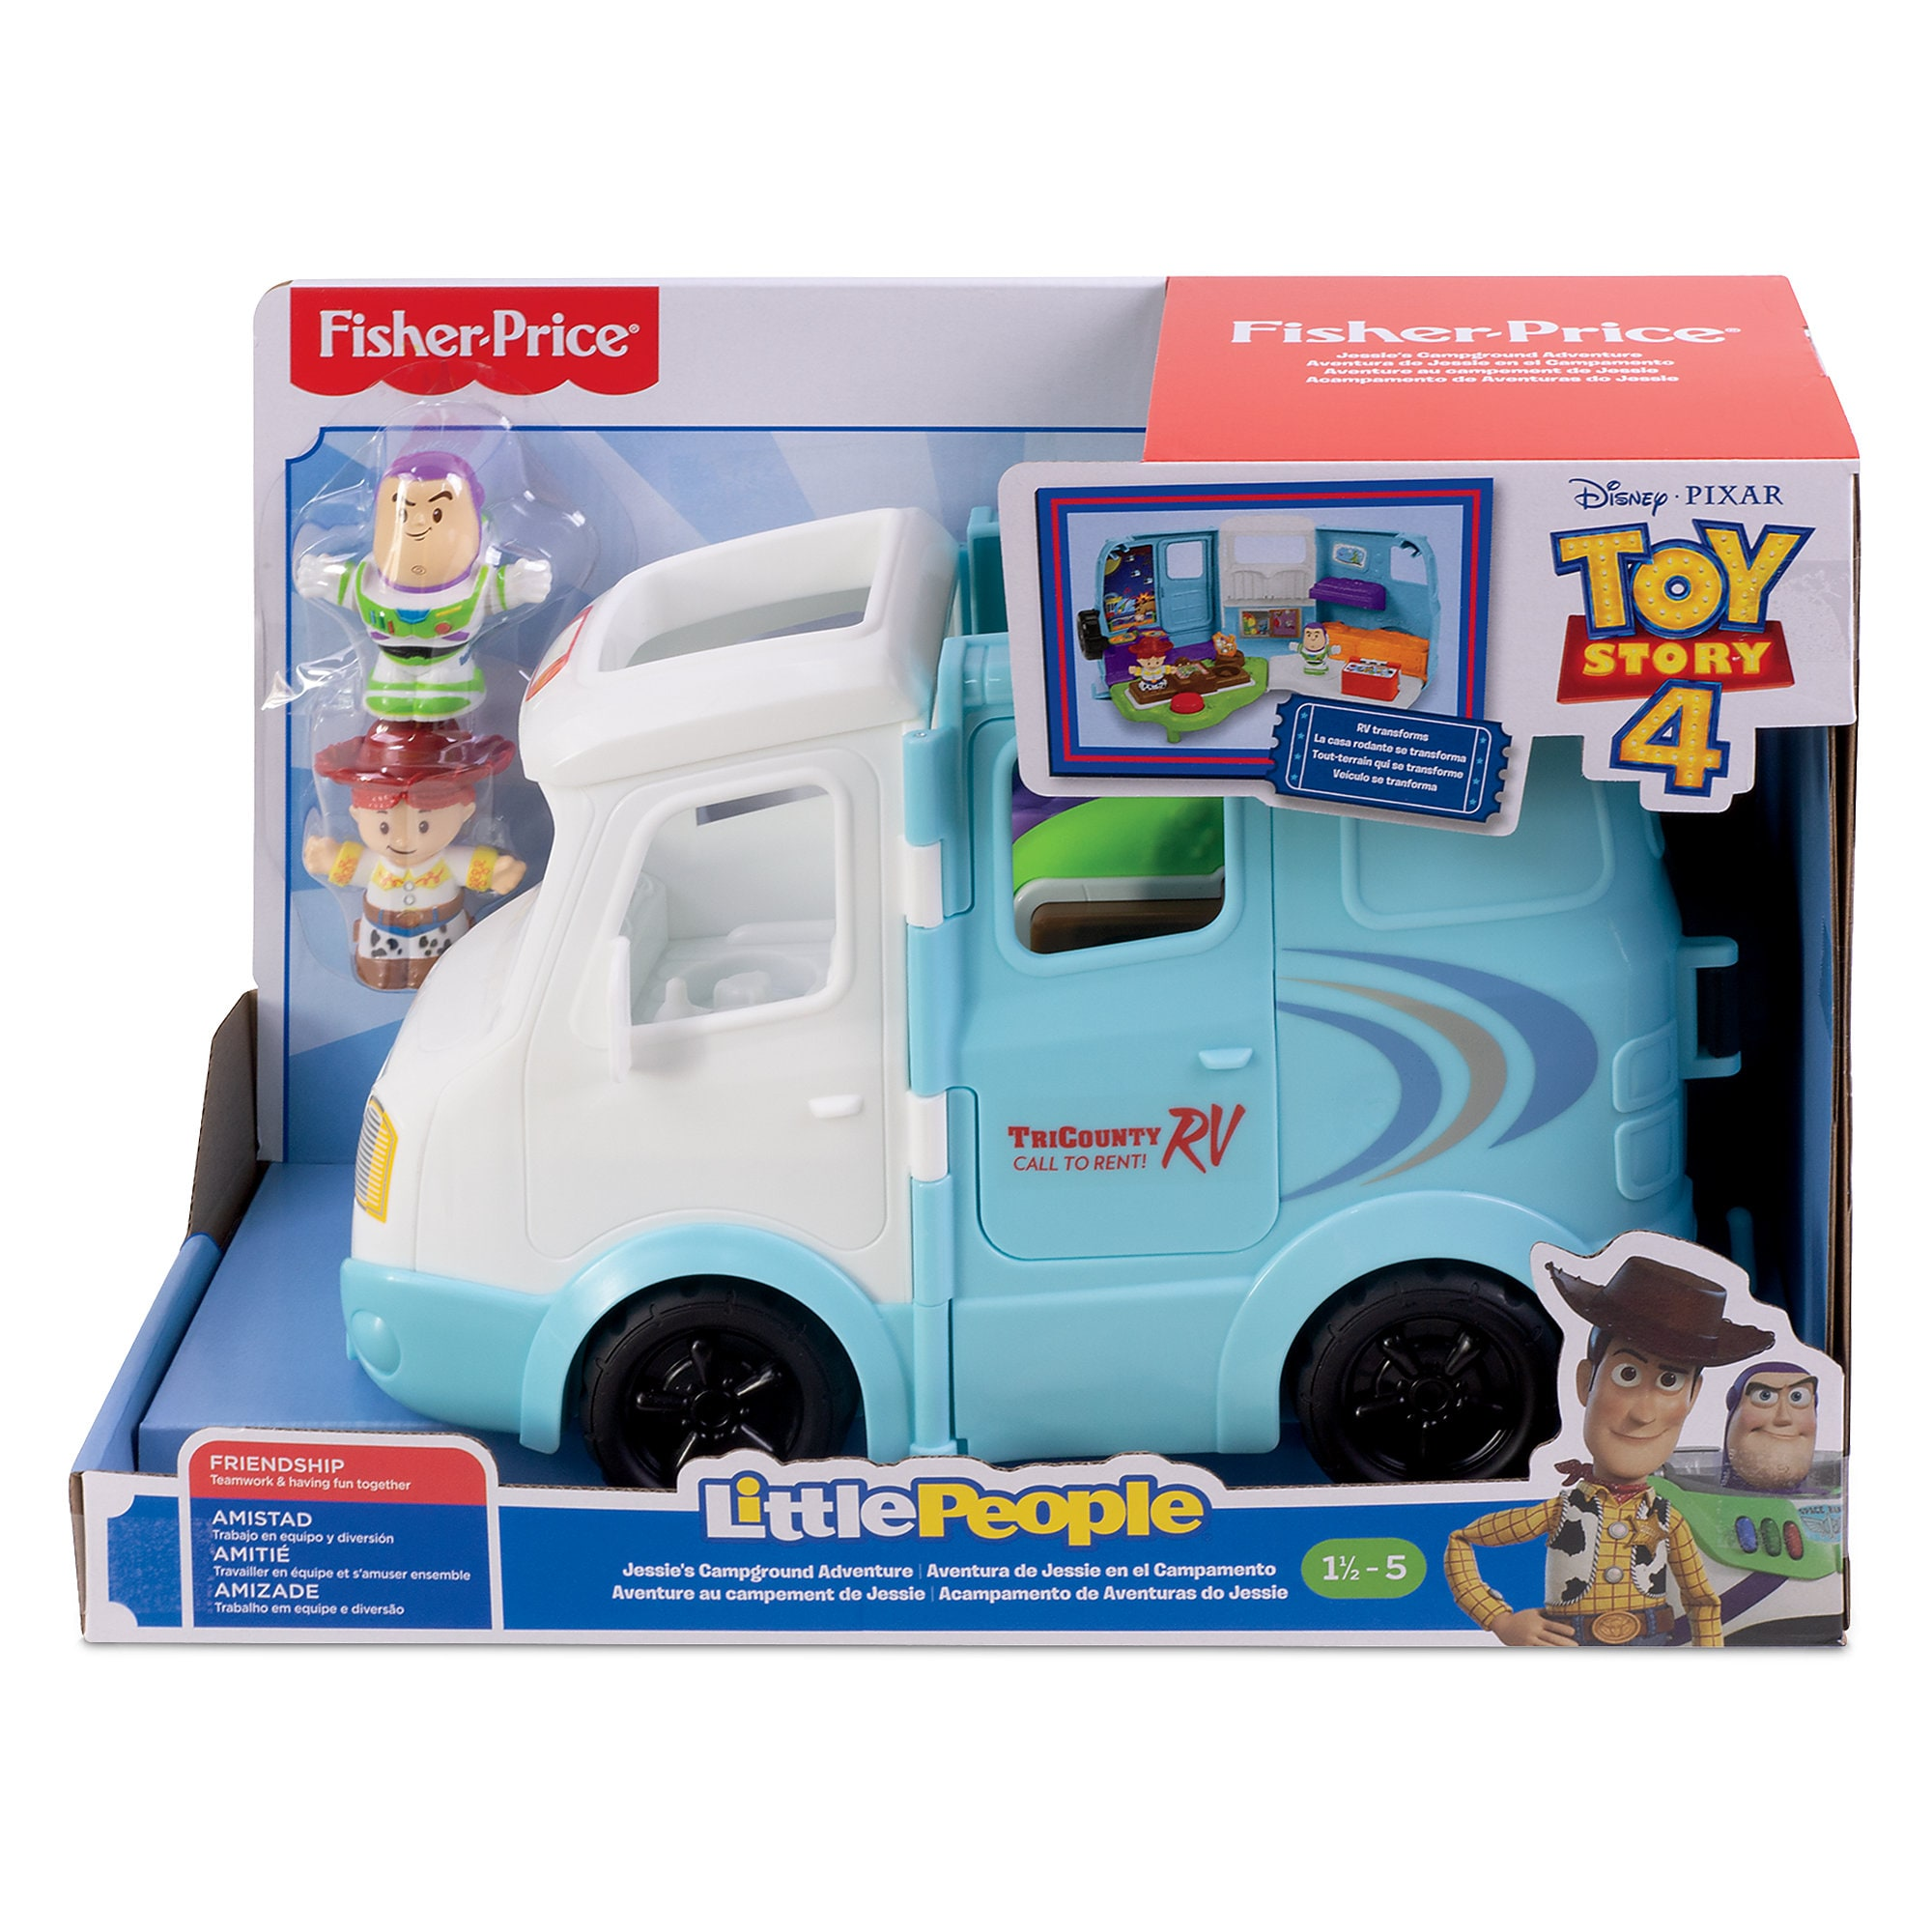 Jessie's Campground Adventure Play Set by Little People – Toy Story 4 released today